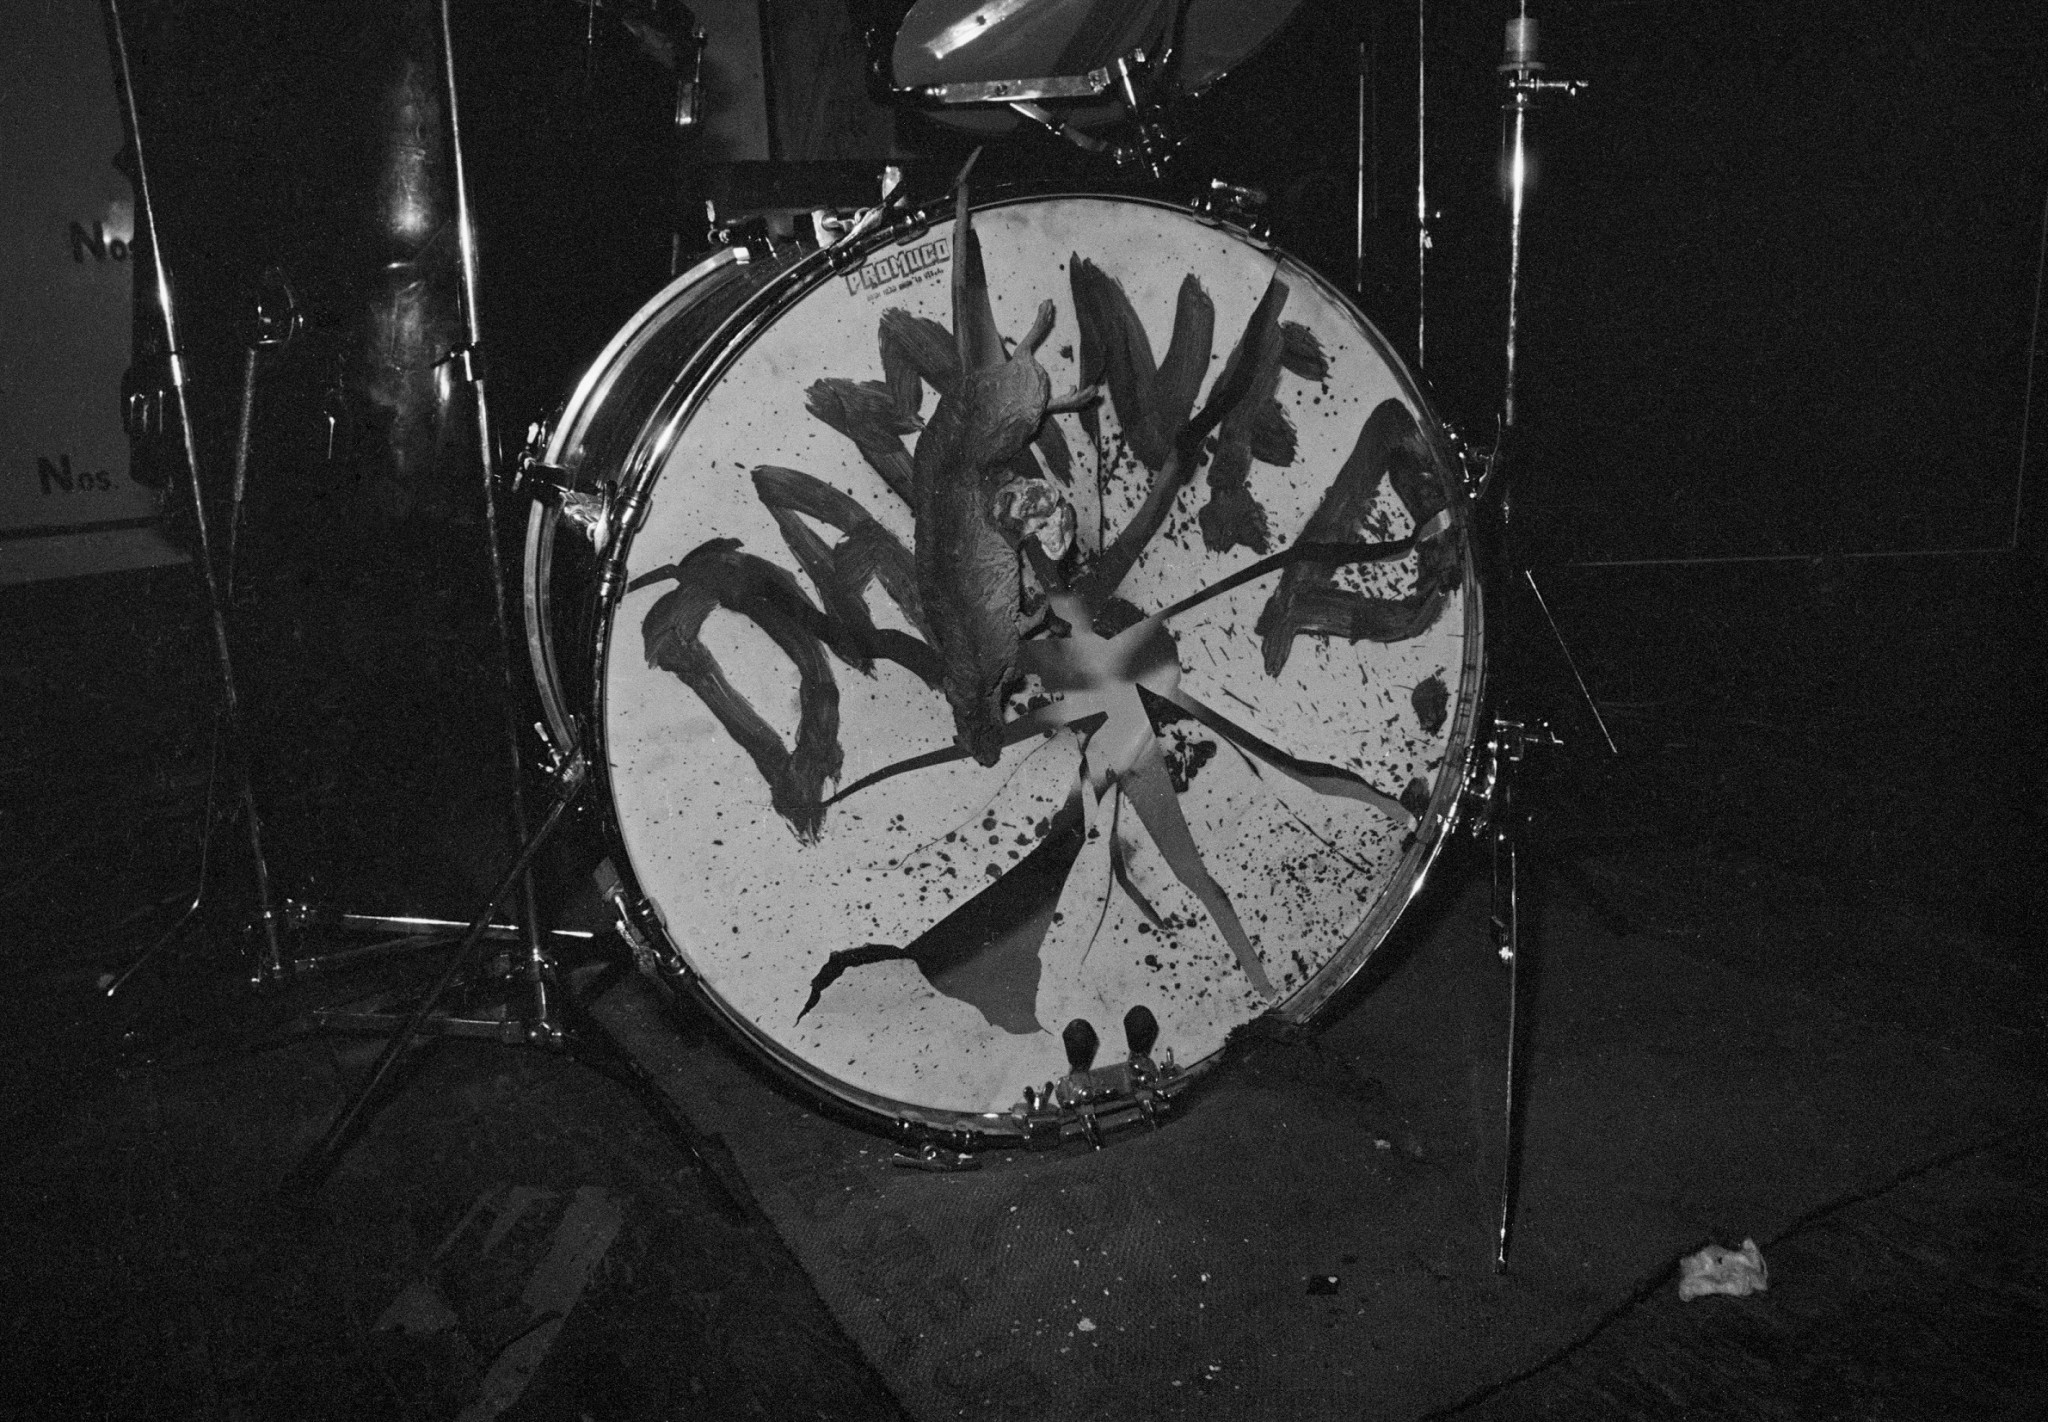 The Damned - Rat Scabies' drumkit live at the Hope & Anchor, London 1 January 1977 (c) John Ingham 1977